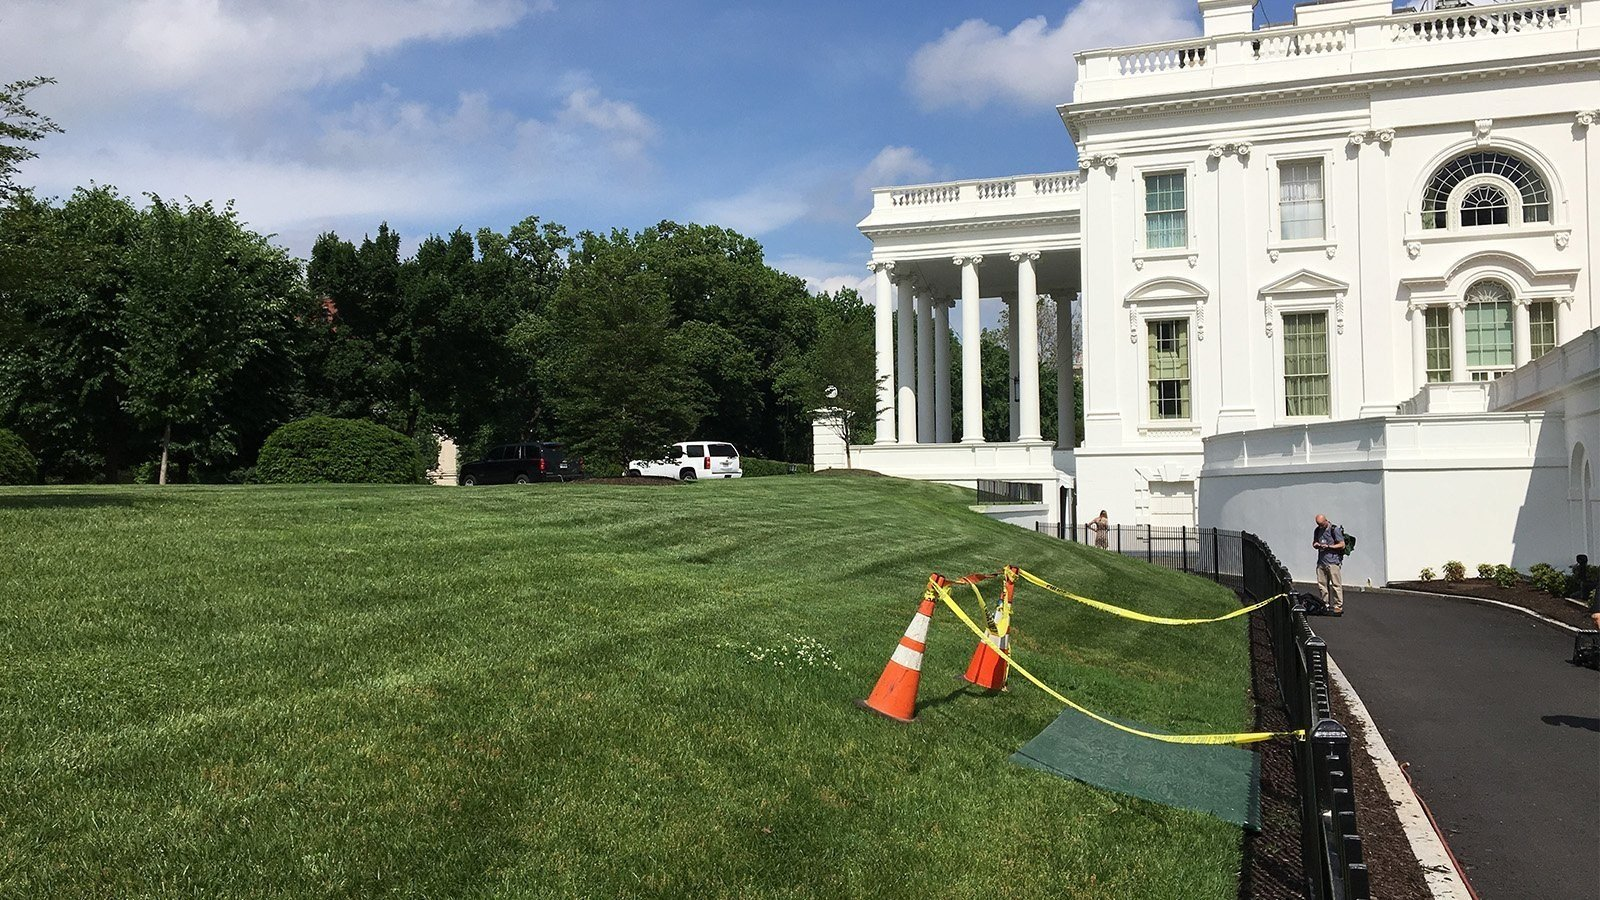 Eyewitnesses first saw the sinkhole on the grassy North Lawn on Saturday, following a week of nearly constant rain in Washington.